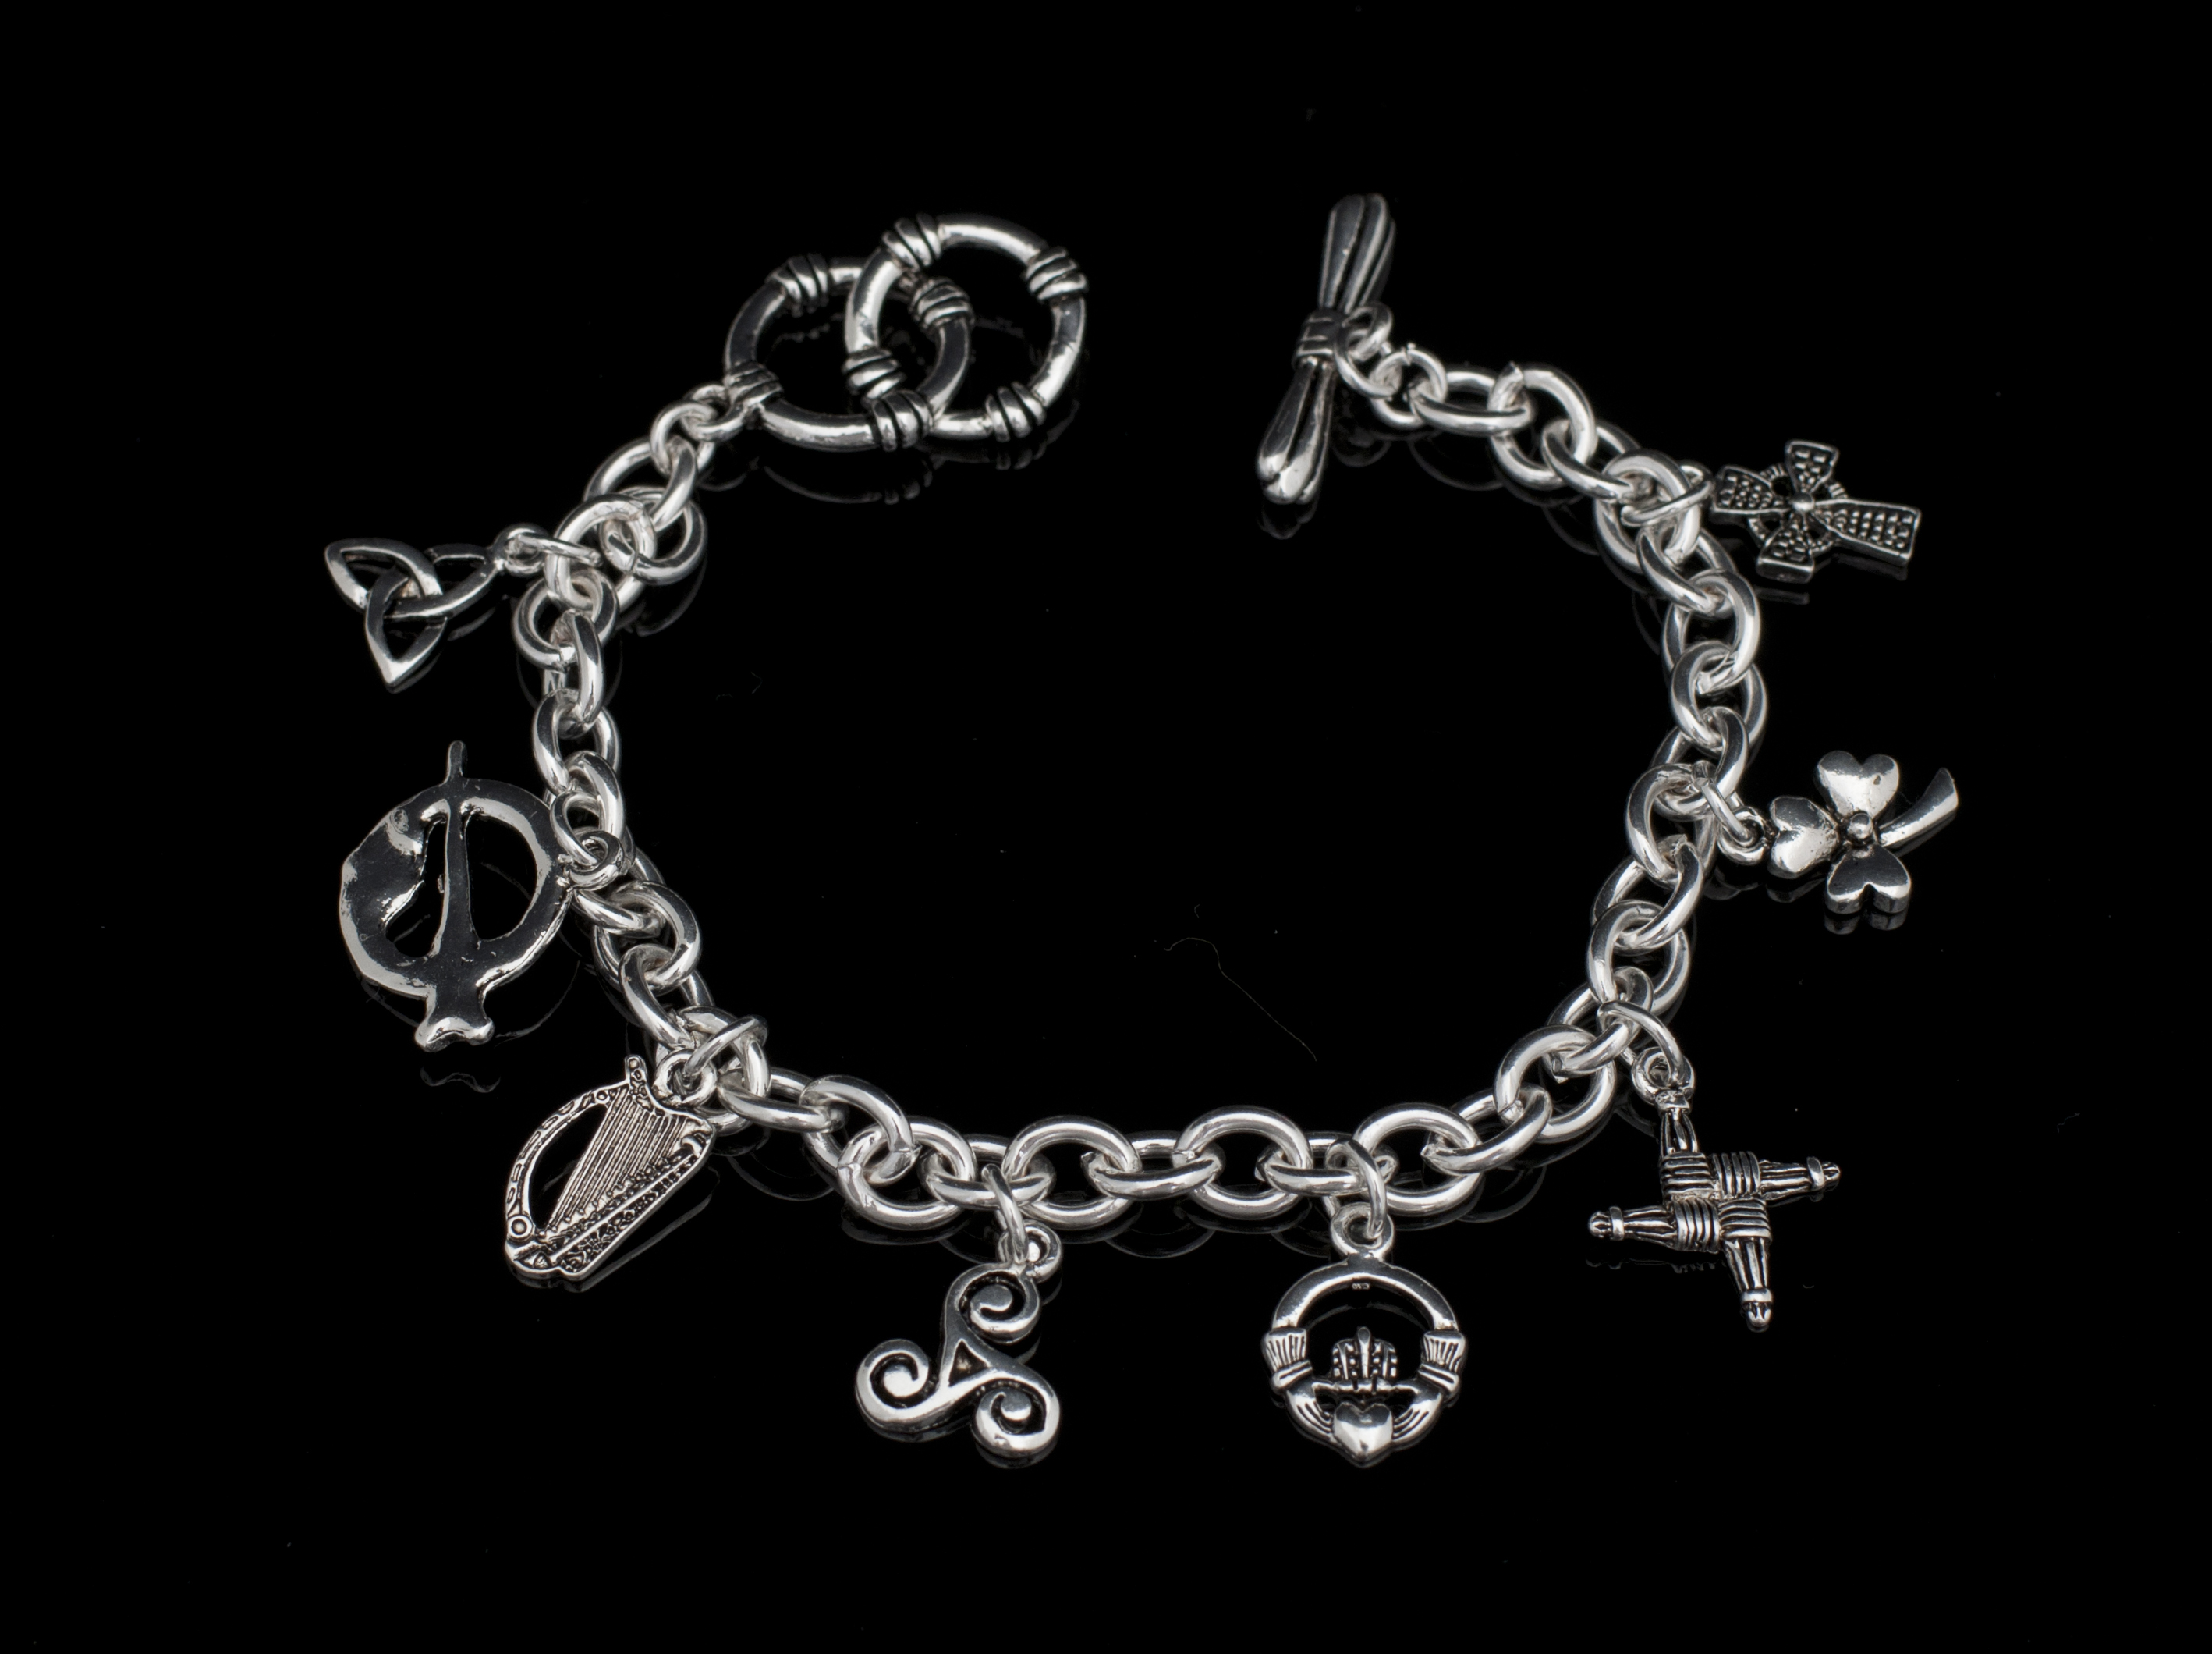 charm sterling cm inches design bangles measures with link bangle jewellery padlock x silver ornate double flower bracelet